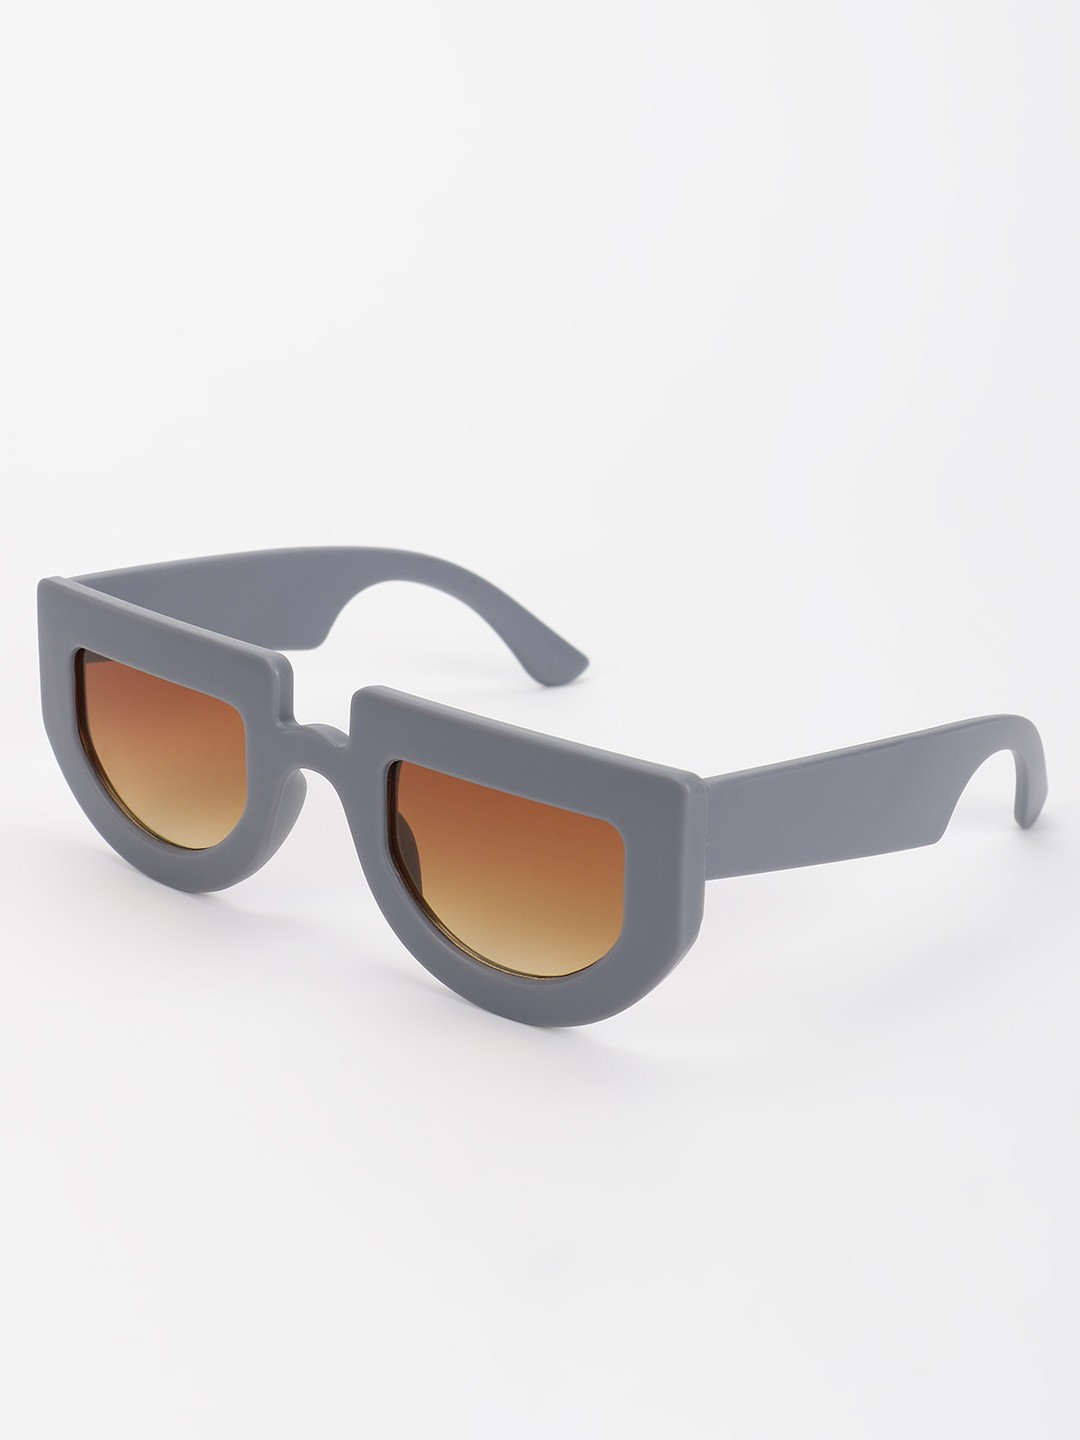 Pataaka Grey Matte Finish Retro Sunglasses 1